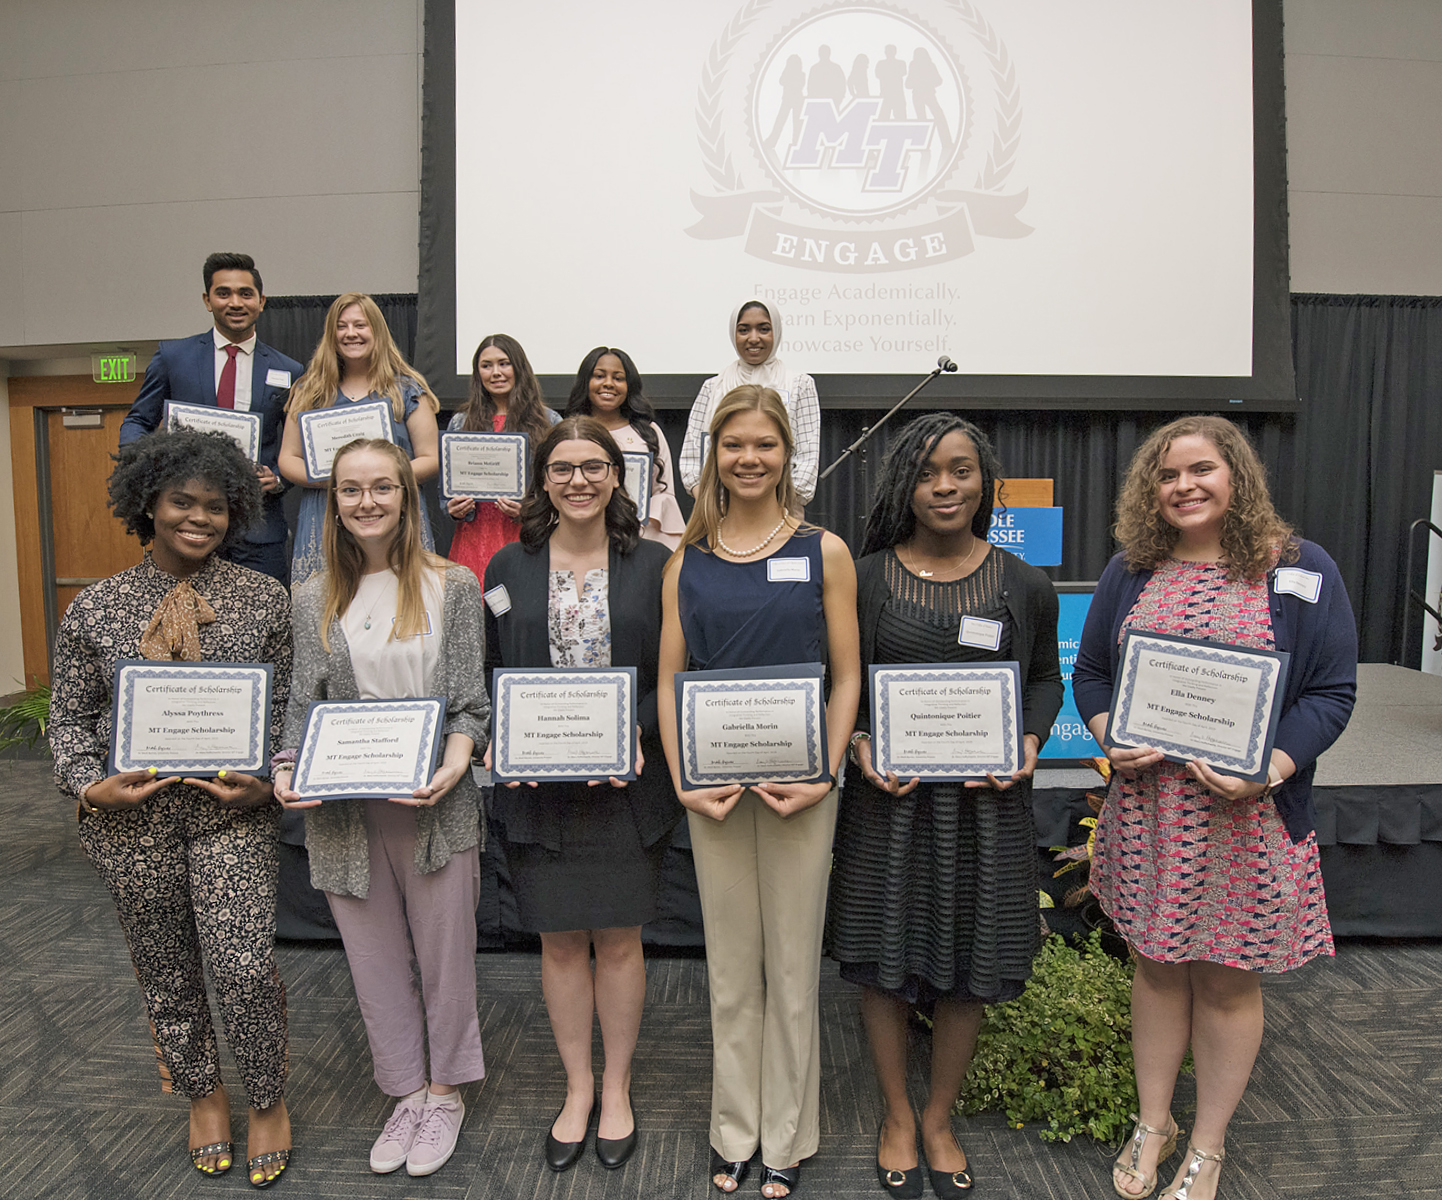 Scholarship winners were annnounced at the 2019 Spring MT Engage Reception held April 4 in the Student Union Ballroom. Pictured, front row from left, are Ayssa Poythress, Samantha Stafford, Hannah Solima (overall winner), Gabriella Morin, Quintonique Poitier and Ella Denney; back row from left, Kaushal Patel, Meredith Craig, Briann McGriff, Keturah Smith, and Alaa Mohammed. Not pictured is winner Rachel Woeltje. (MTSU photo by Andy Heidt)